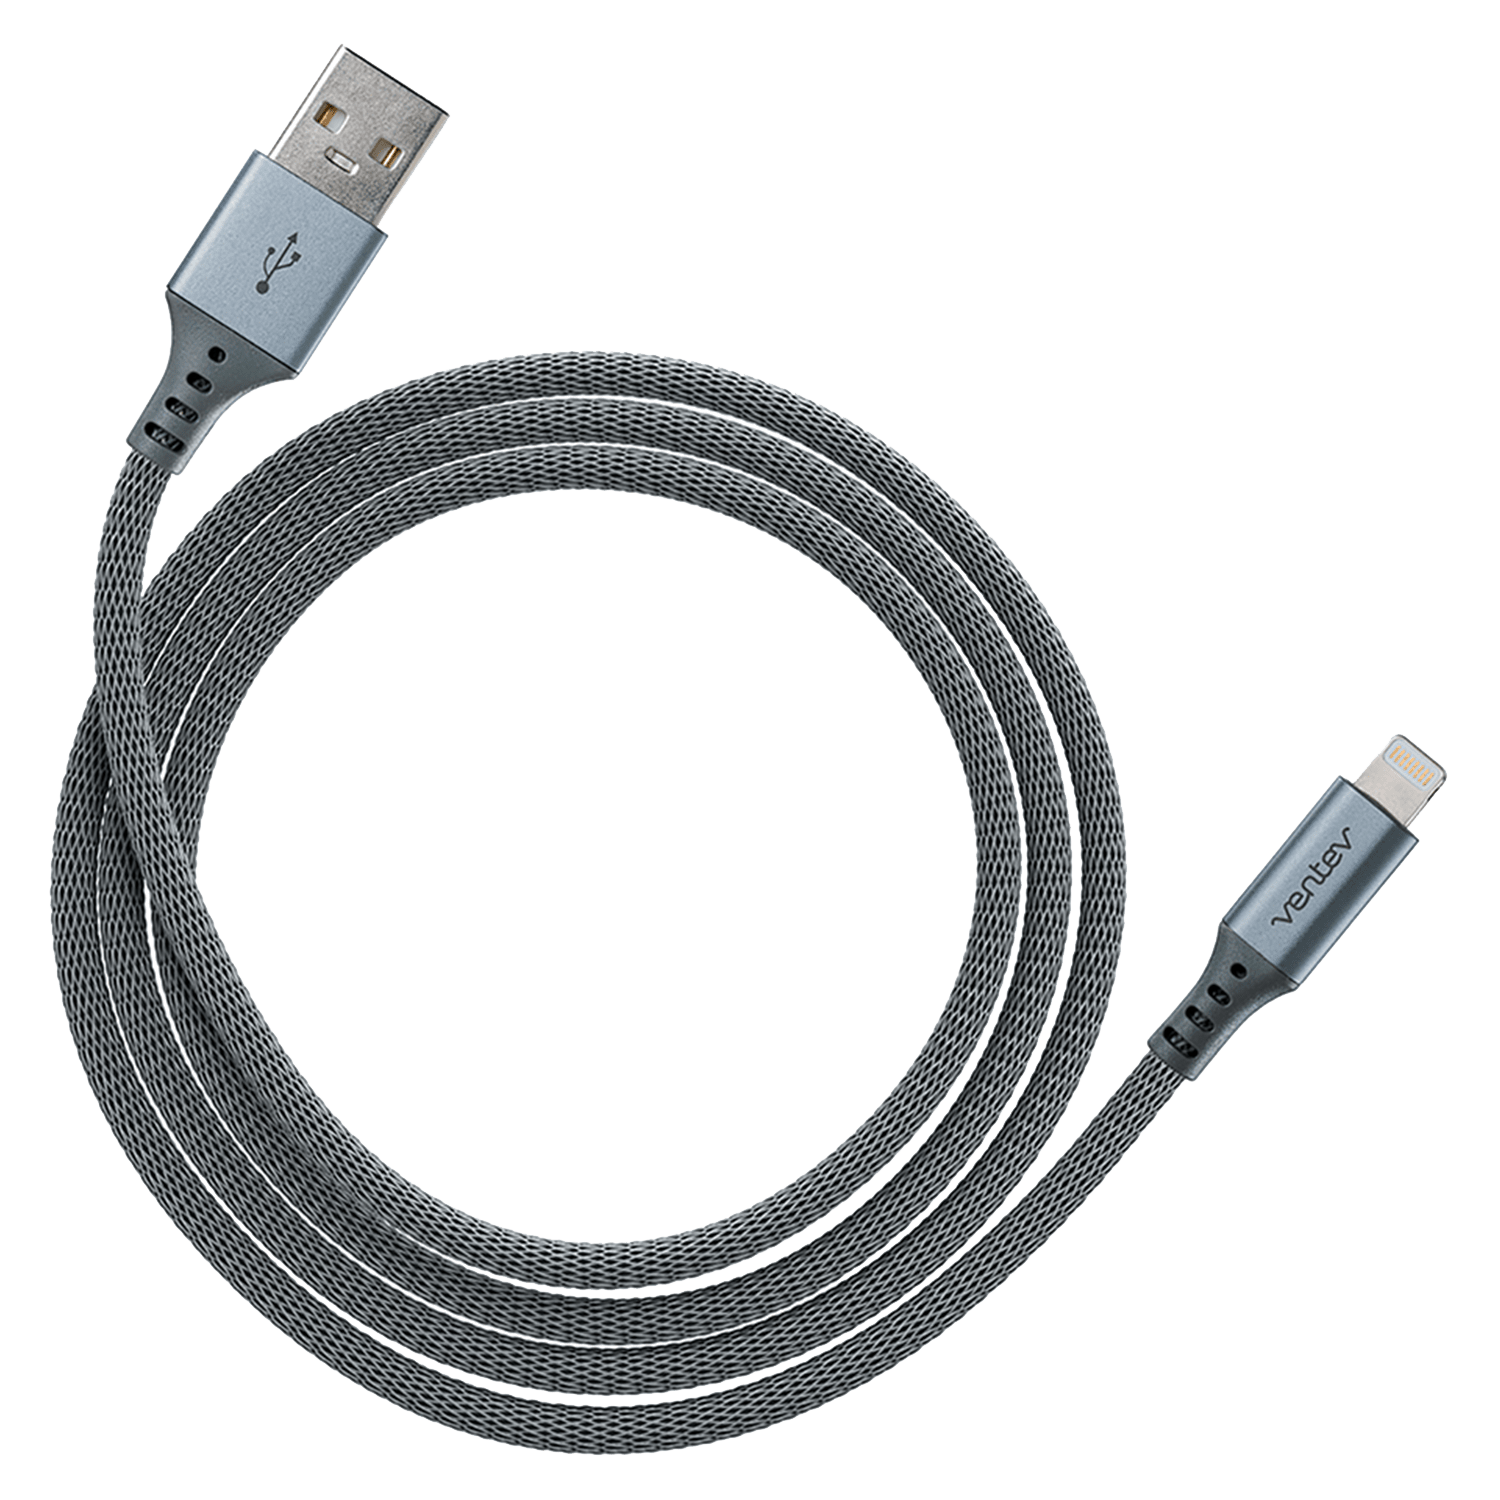 Wholesale cell phone accessory Ventev - chargesync alloy USB A to Apple Lightning Cable 4ft